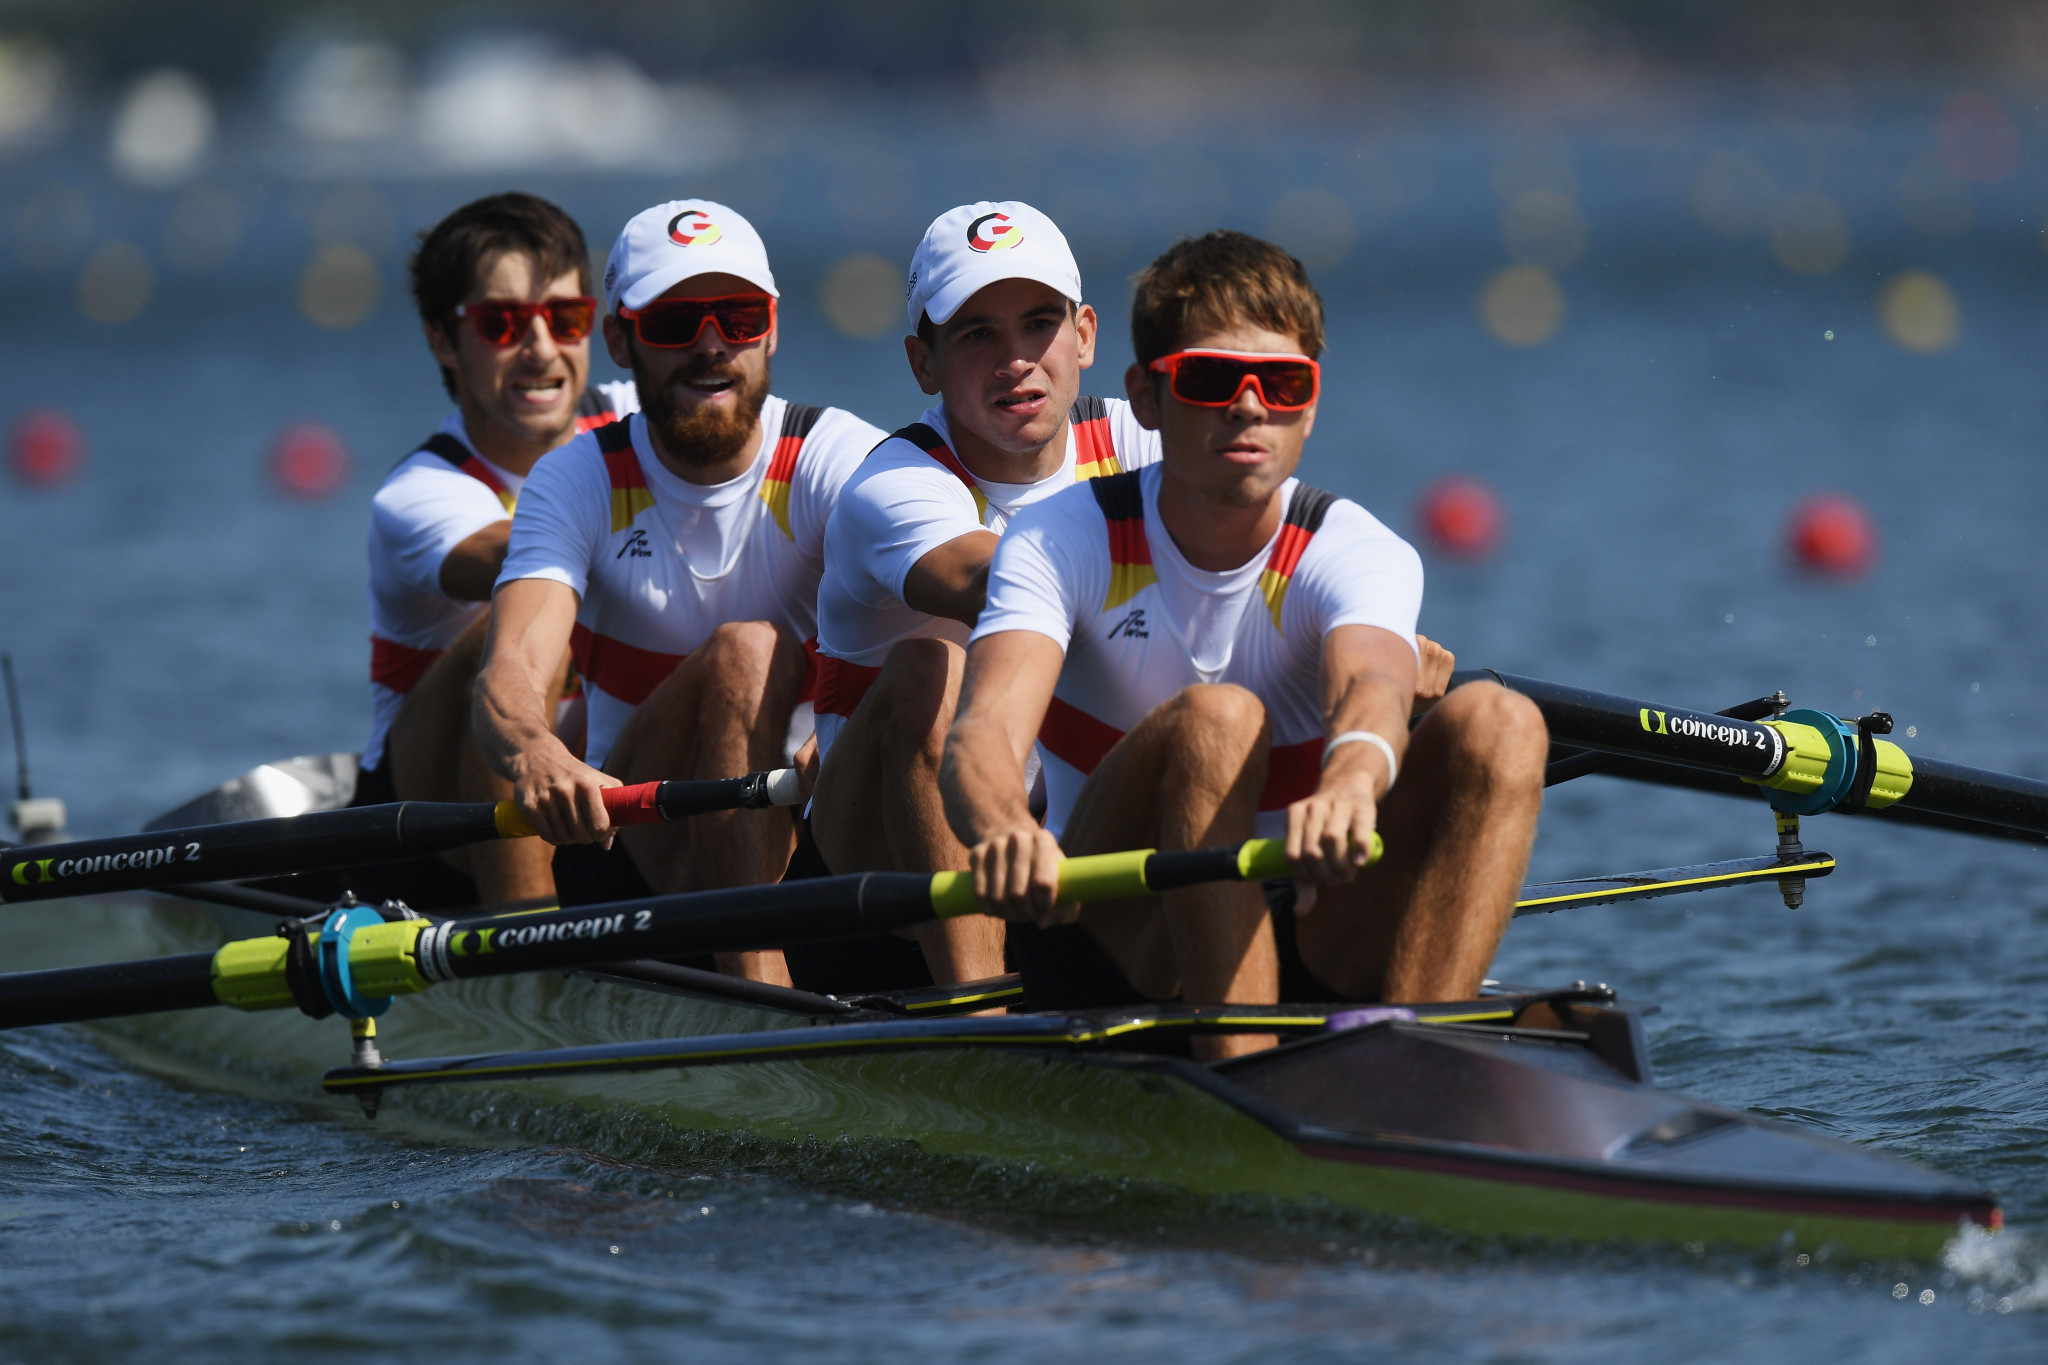 German rower Jonathan Koch said the IOC has no reason not to distribute additional funding to athletes ©Getty Images